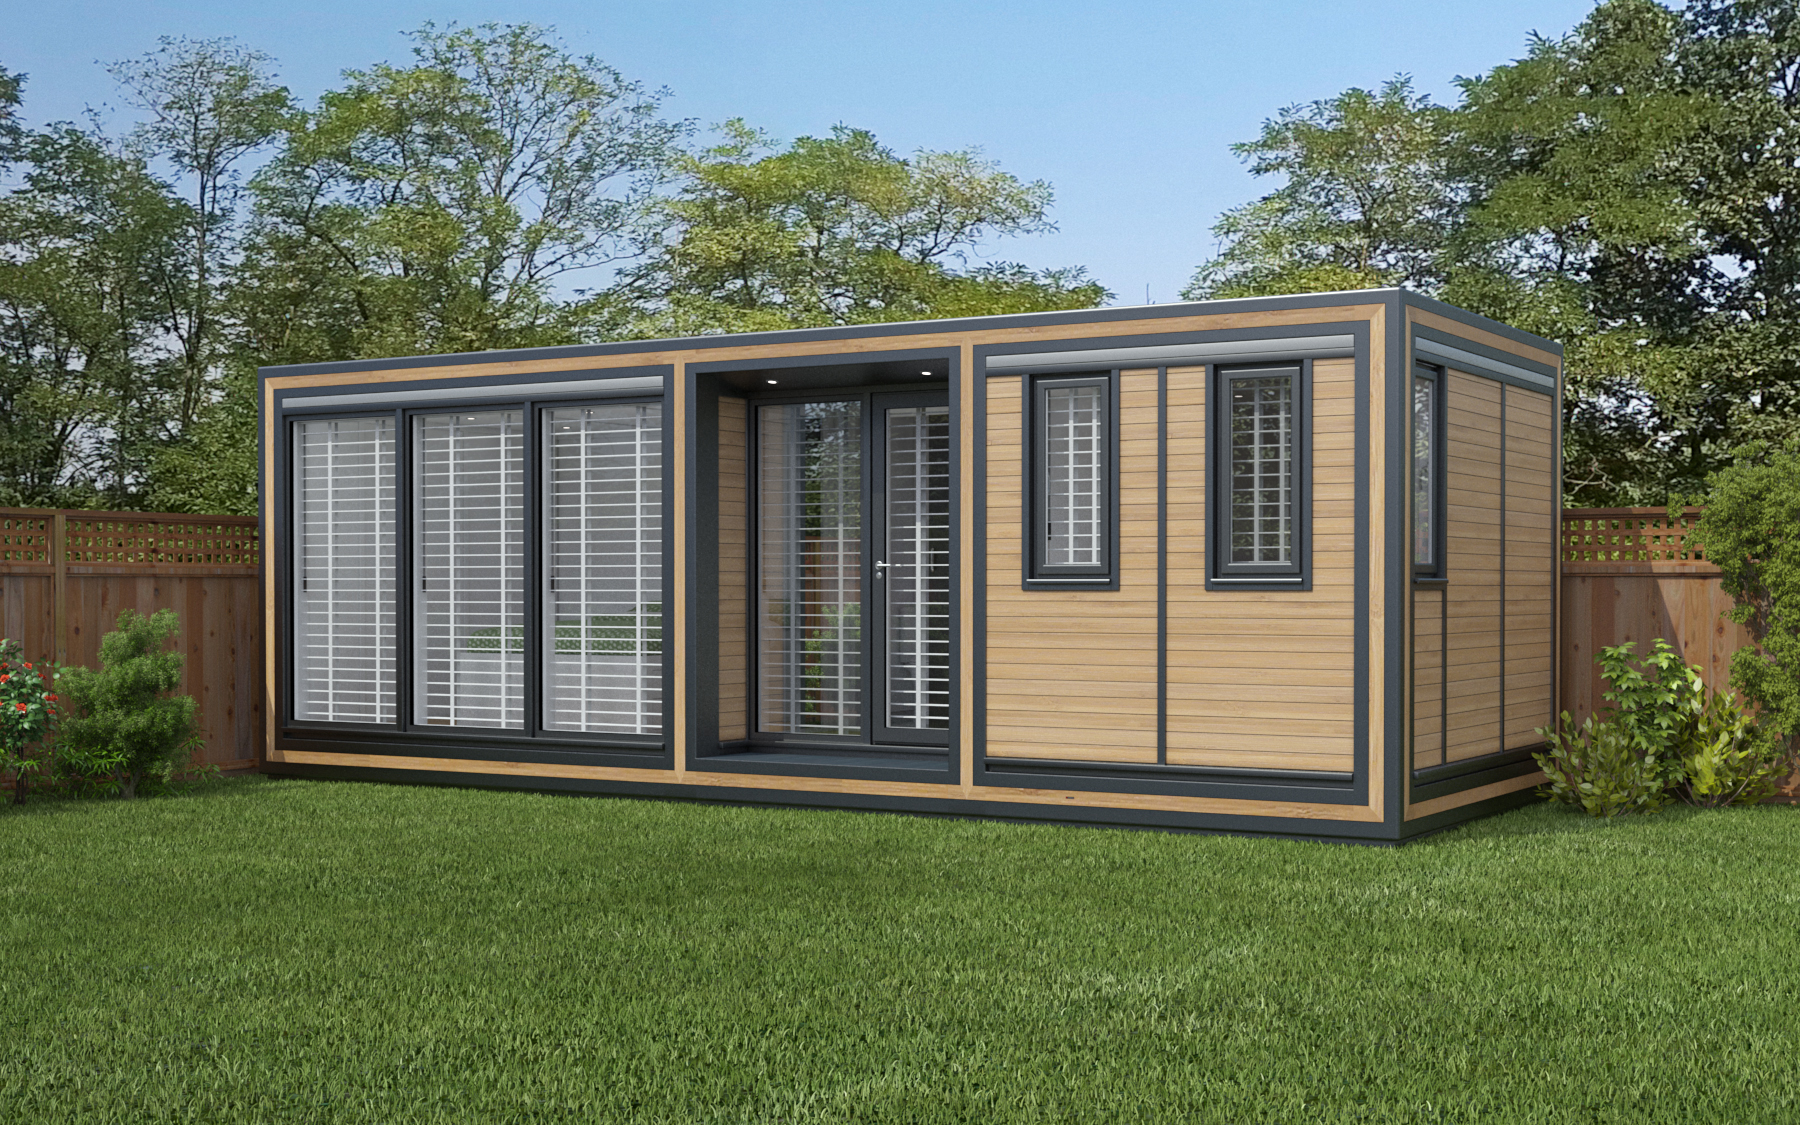 ZEDBOX 725  (7 x 2.5)  Internal Size: 7472 x 2720  External Size: 7942 x 3190  Bed Options: Single or Double  Kitchen Options:Micro or Premier  Wet Room Options: Yes  Portico: Yes  Price:  £30,000    Optional Extras    Request Zedbox Catalogue